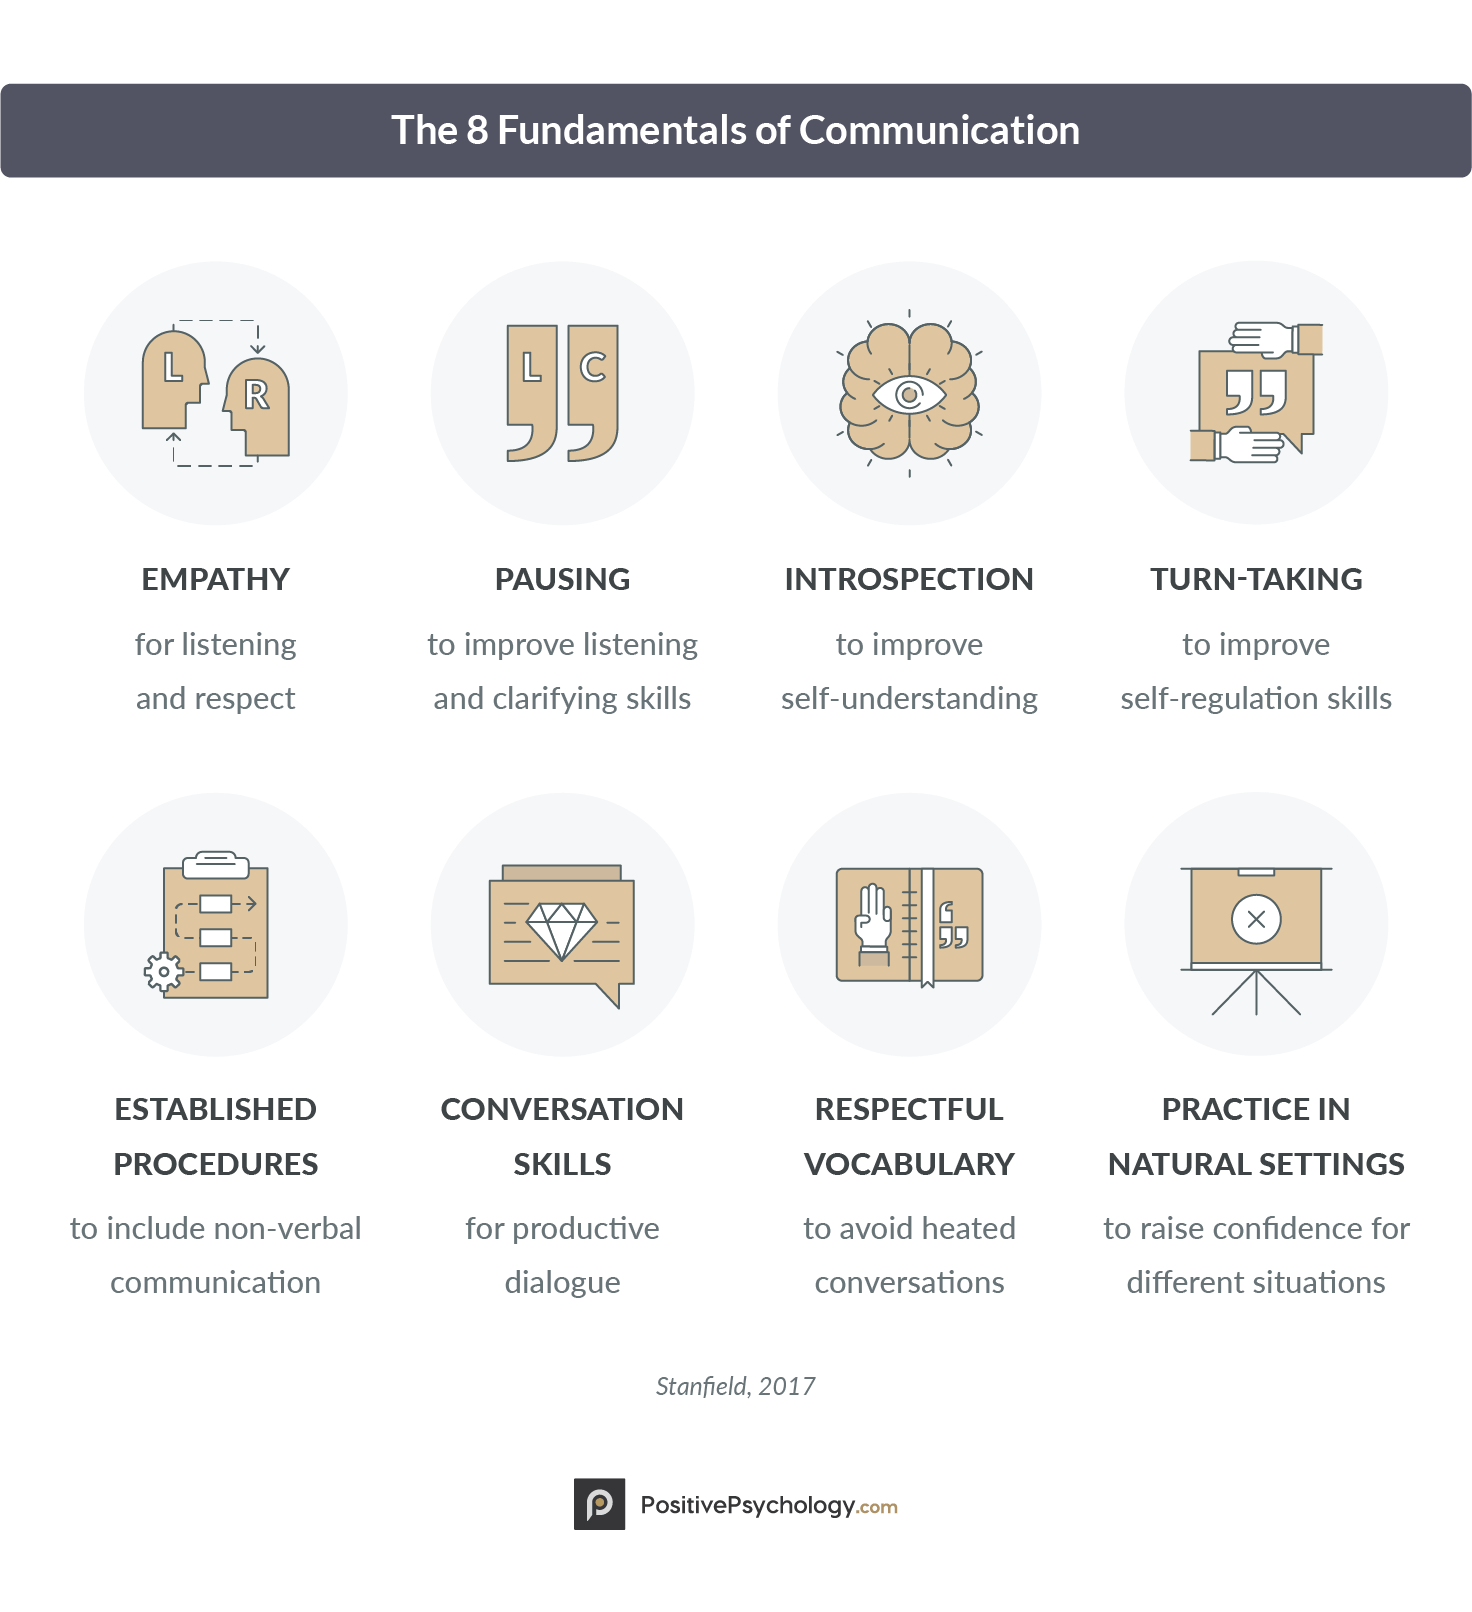 The 8 Fundamentals of Communication